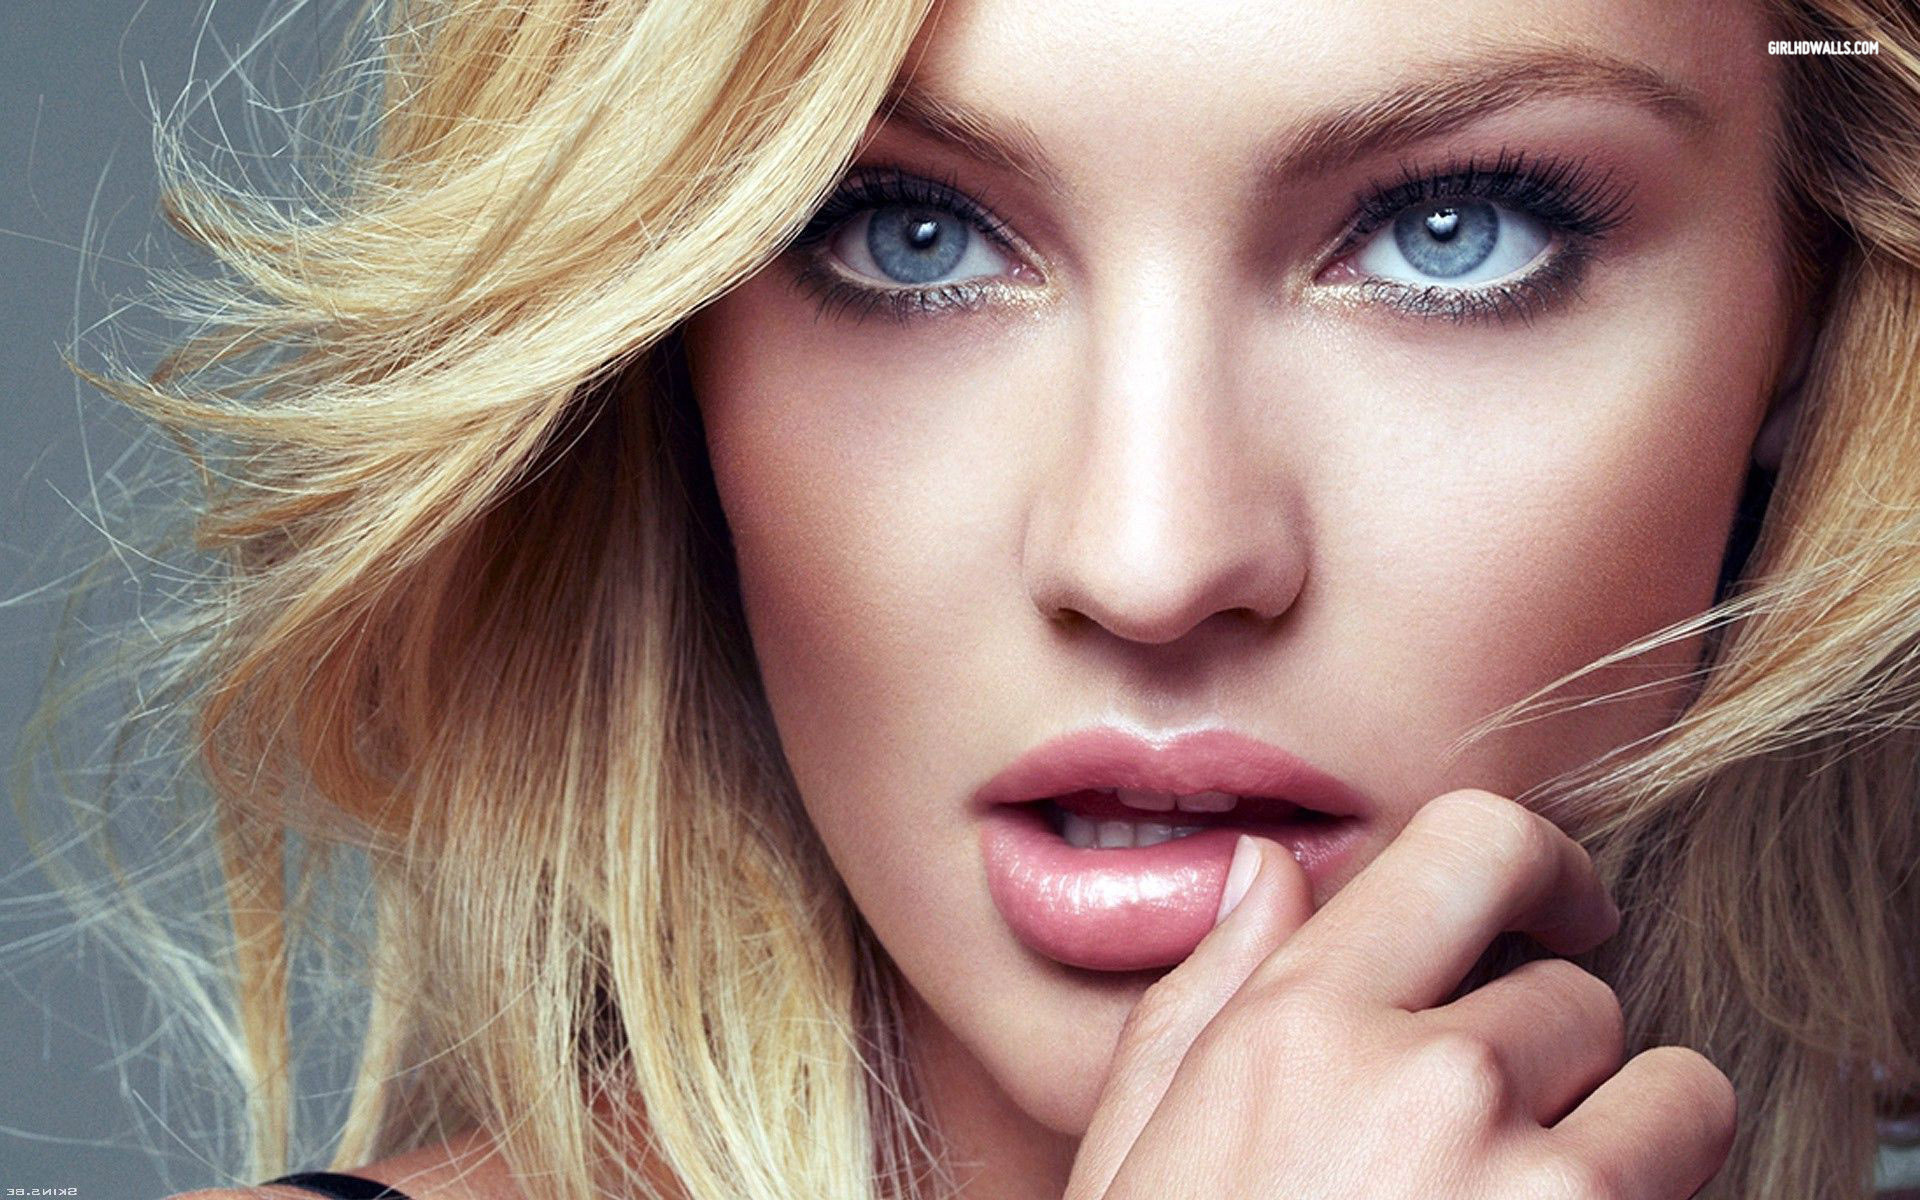 Candice Swanepoel Portrait Hd Wallpaper   All Wallpapers